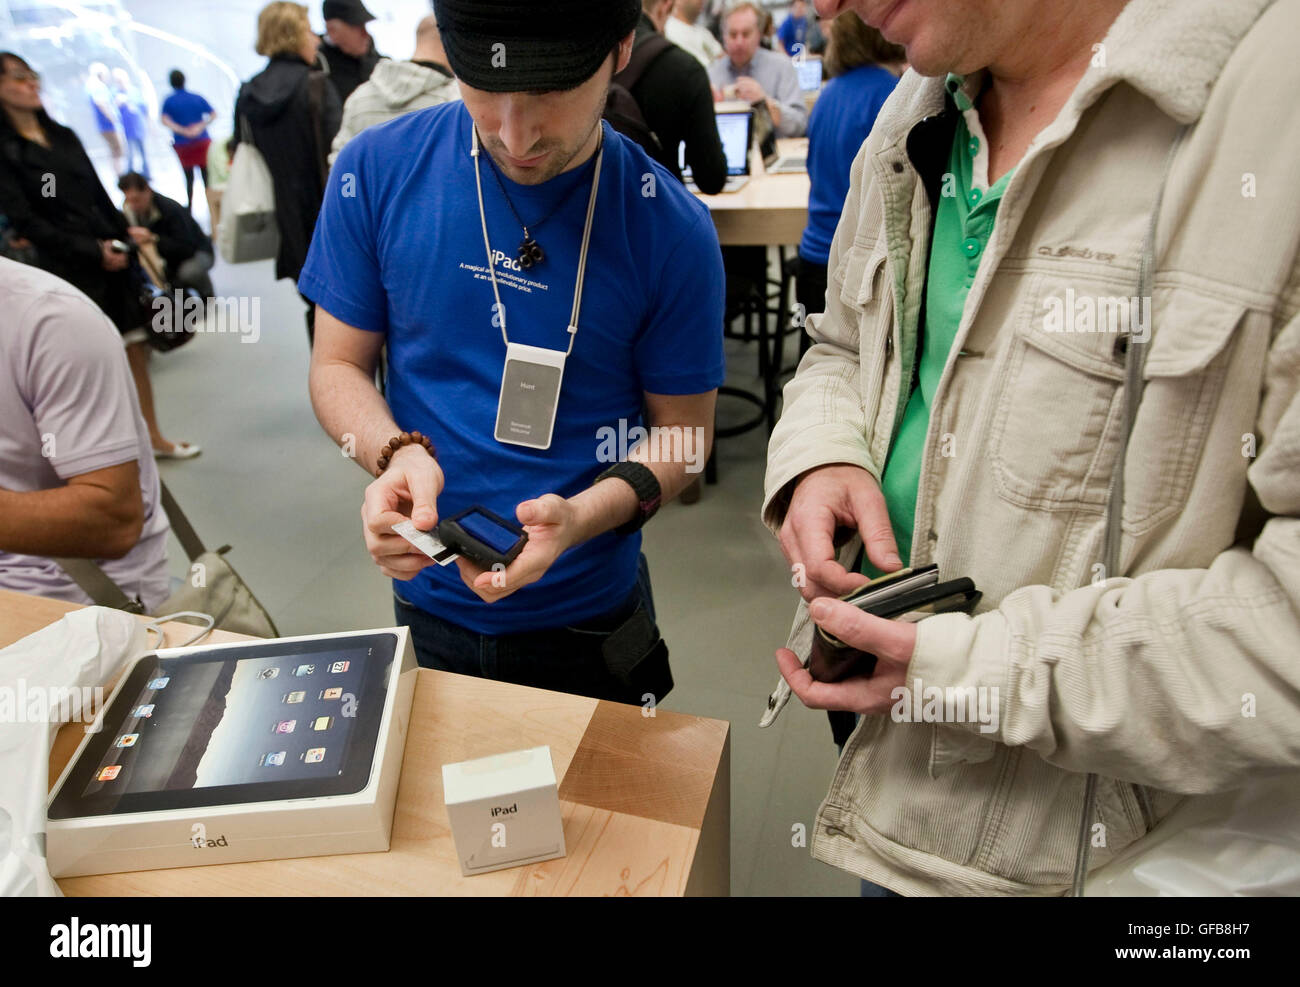 An Apple Store Employee L Blue Shirt Swipes A Credit Card On His IPhone To Charge Customer R For New IPad Announ